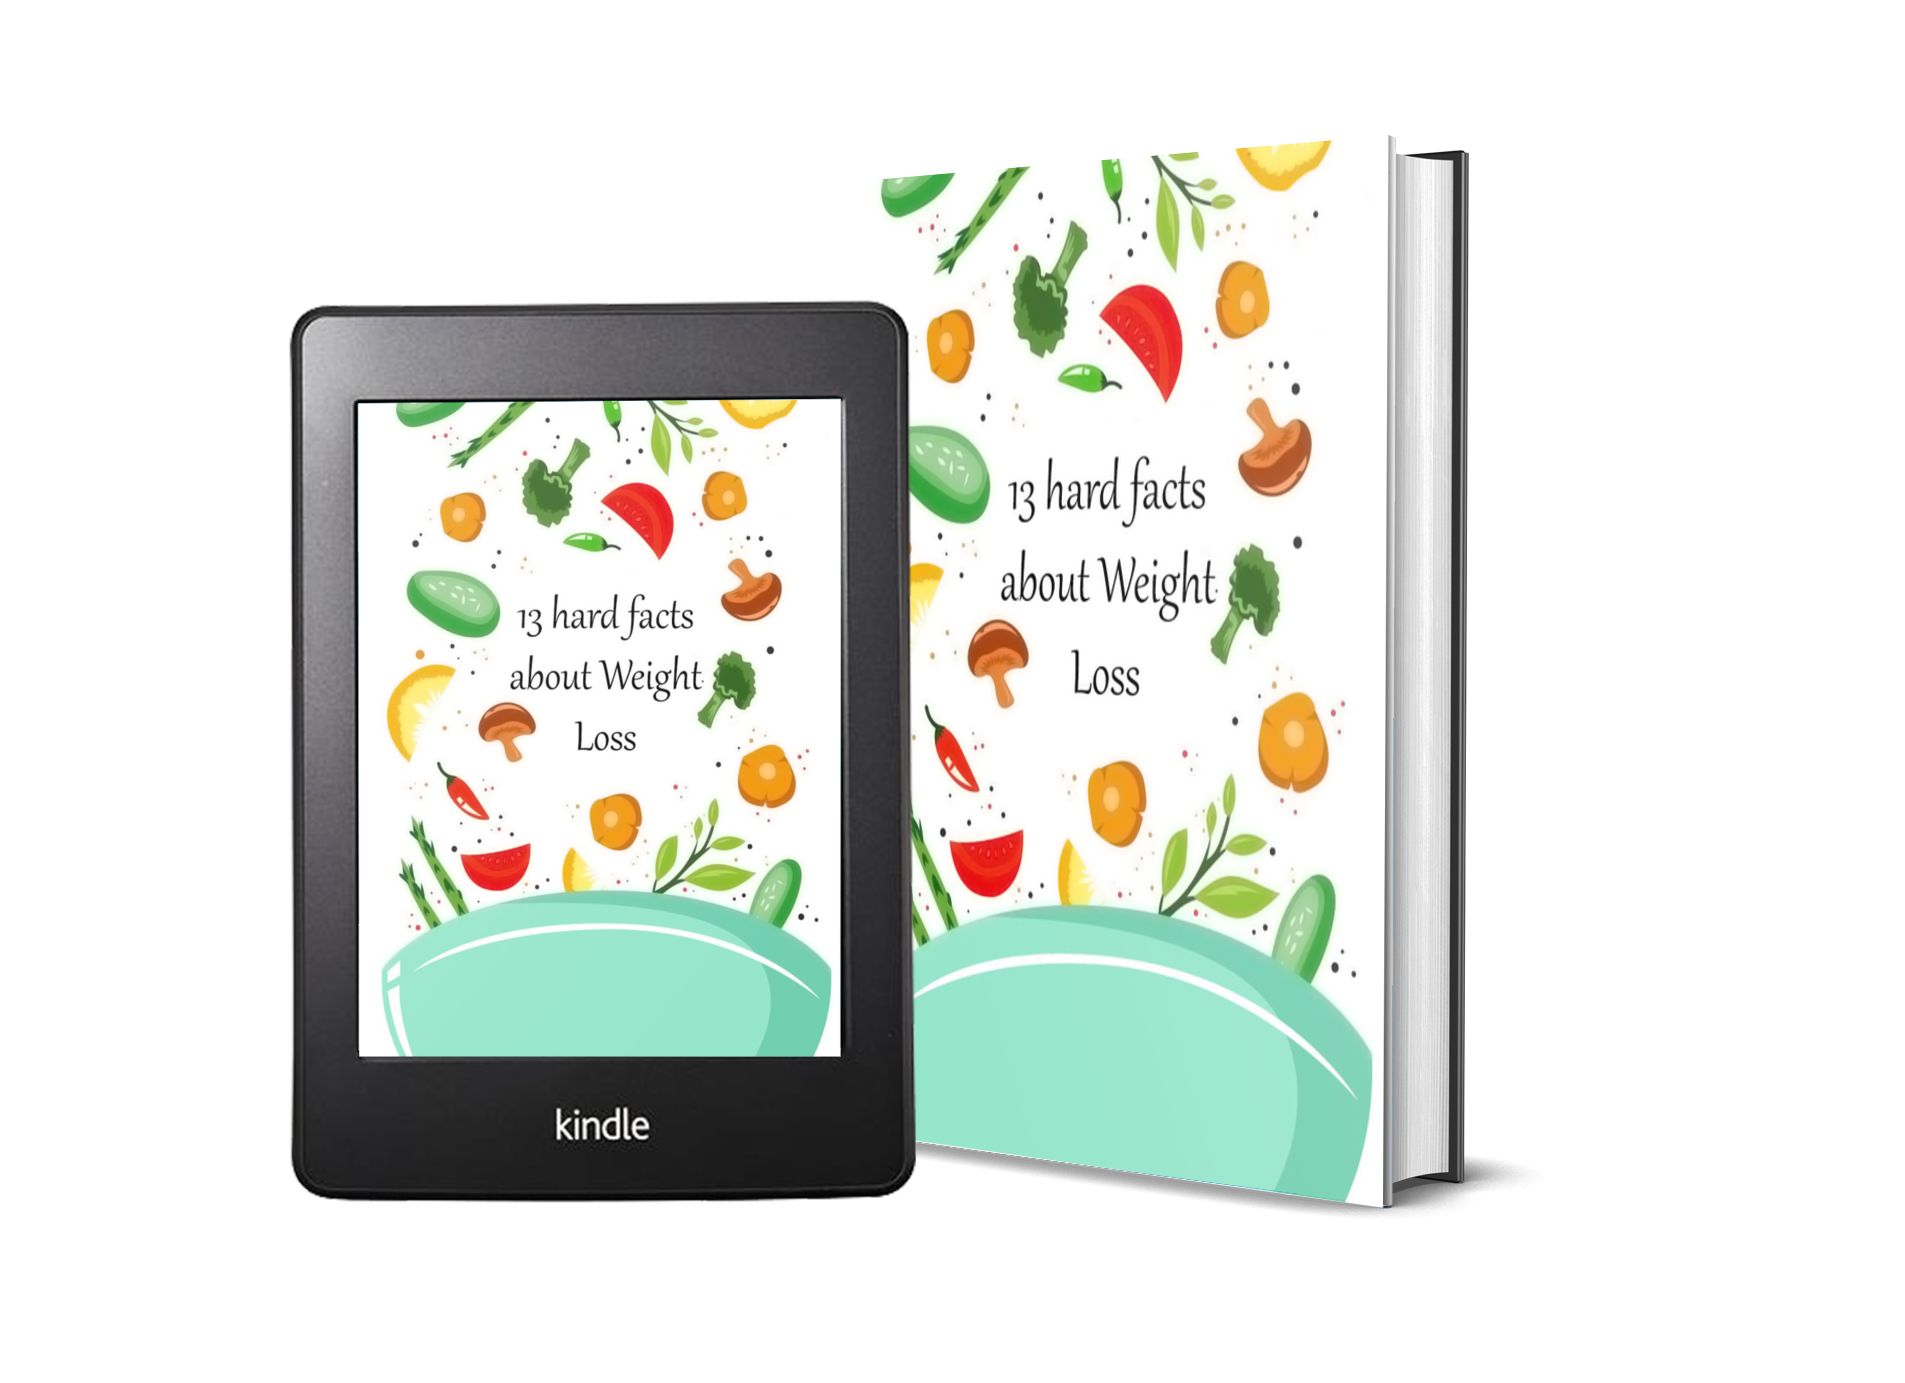 13 hard facts about weight loss diet ebook cover